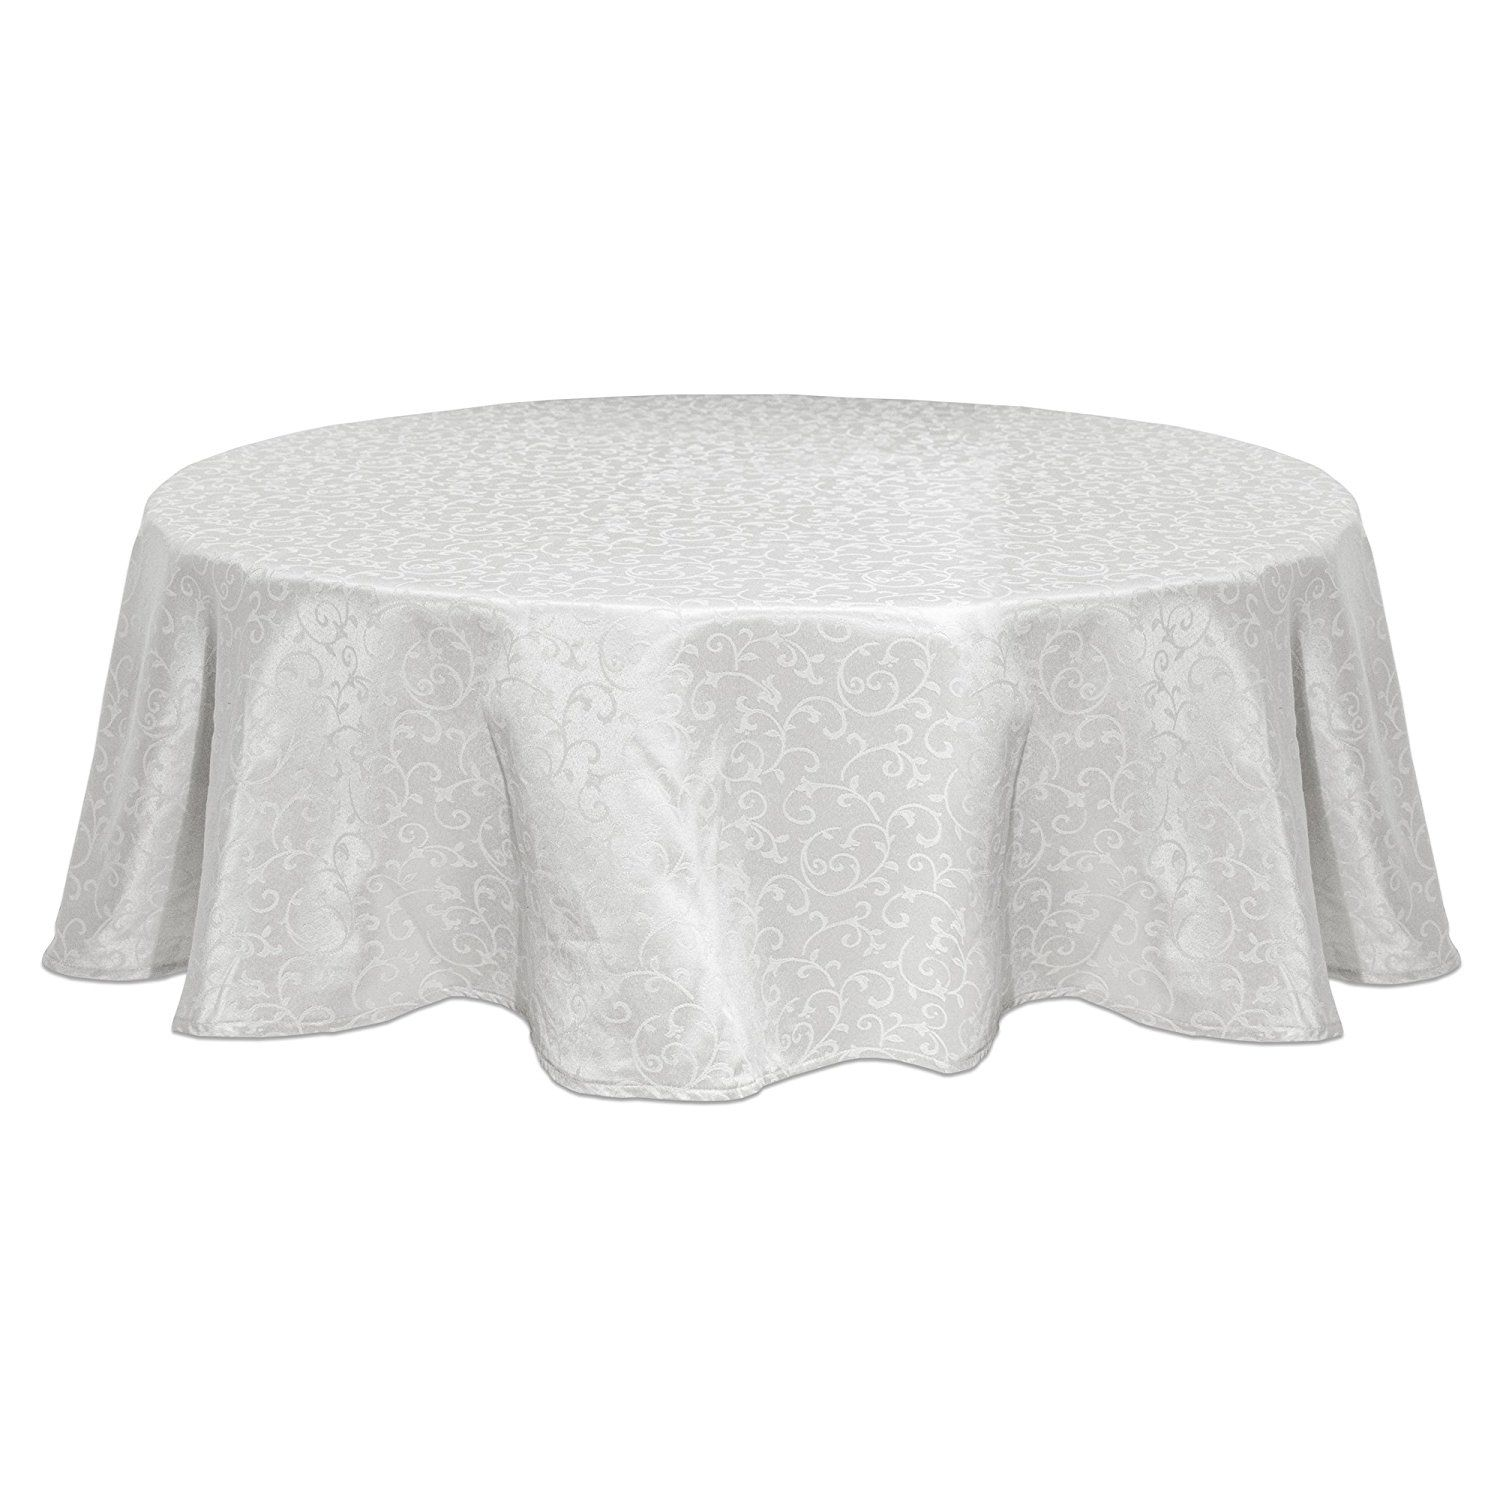 Lenox Opal Innocence 70 Inch Round Tablecloth White